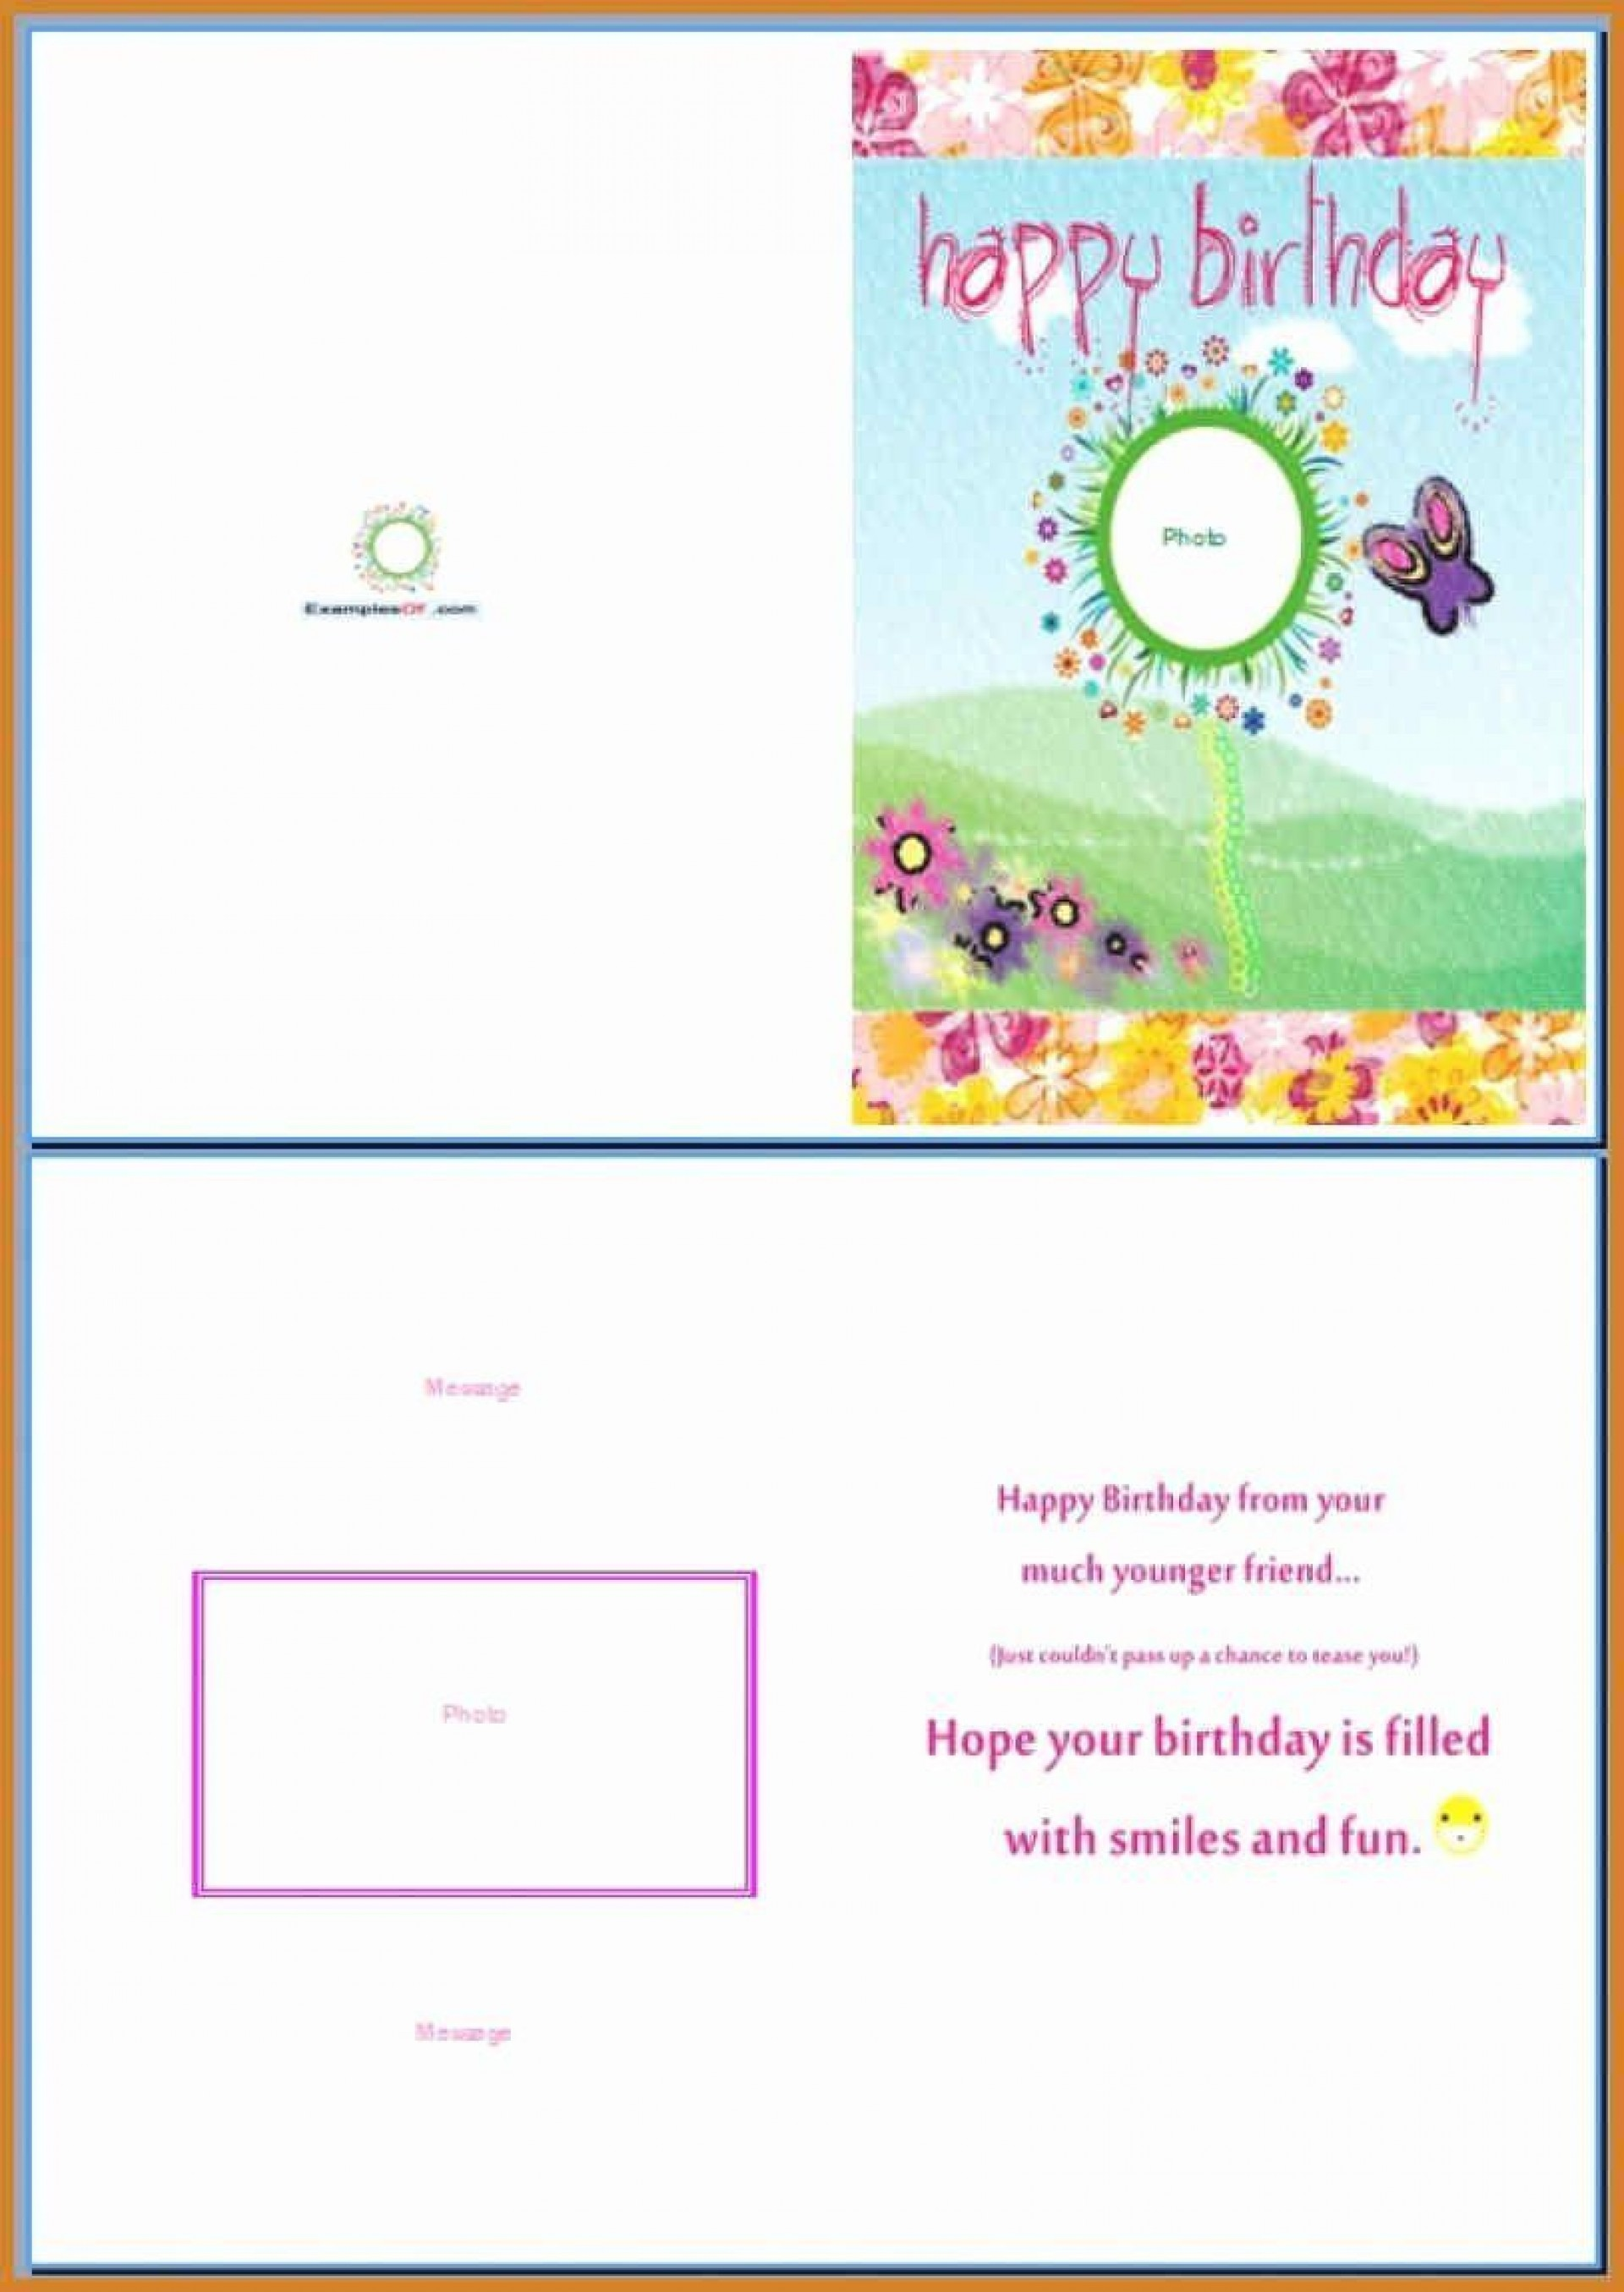 006 Amazing Birthday Card Template Word Highest Clarity  Blank Greeting Microsoft 20101920